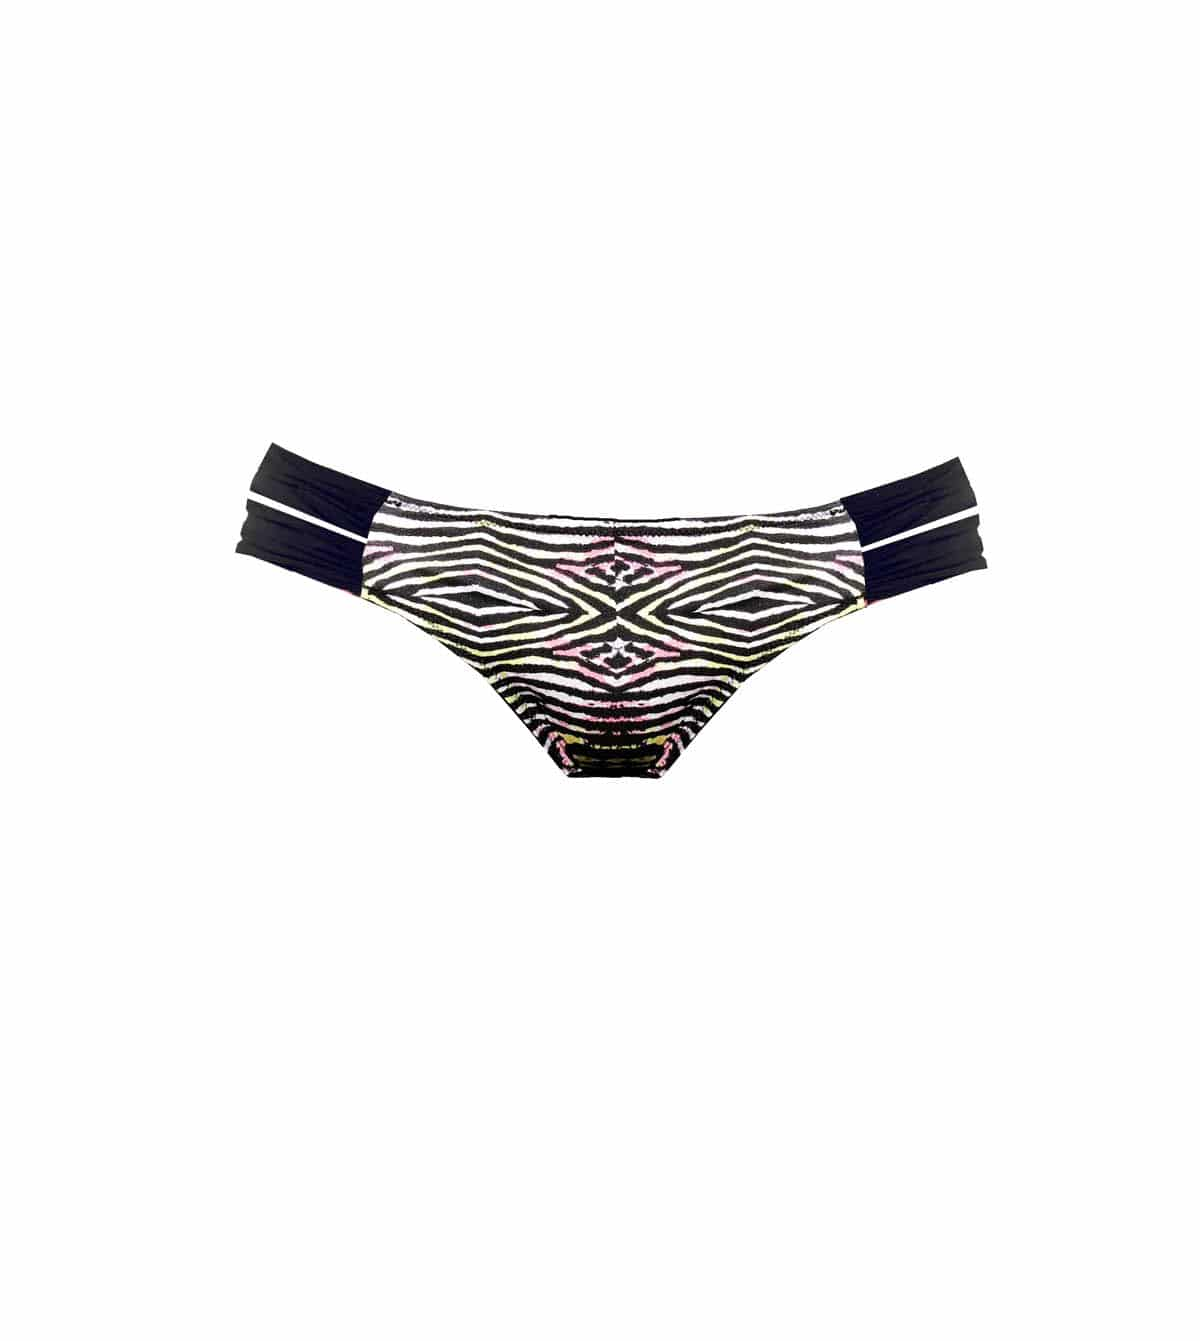 ACQUA BAZAAR TASCO ZEBRA BOTTOM